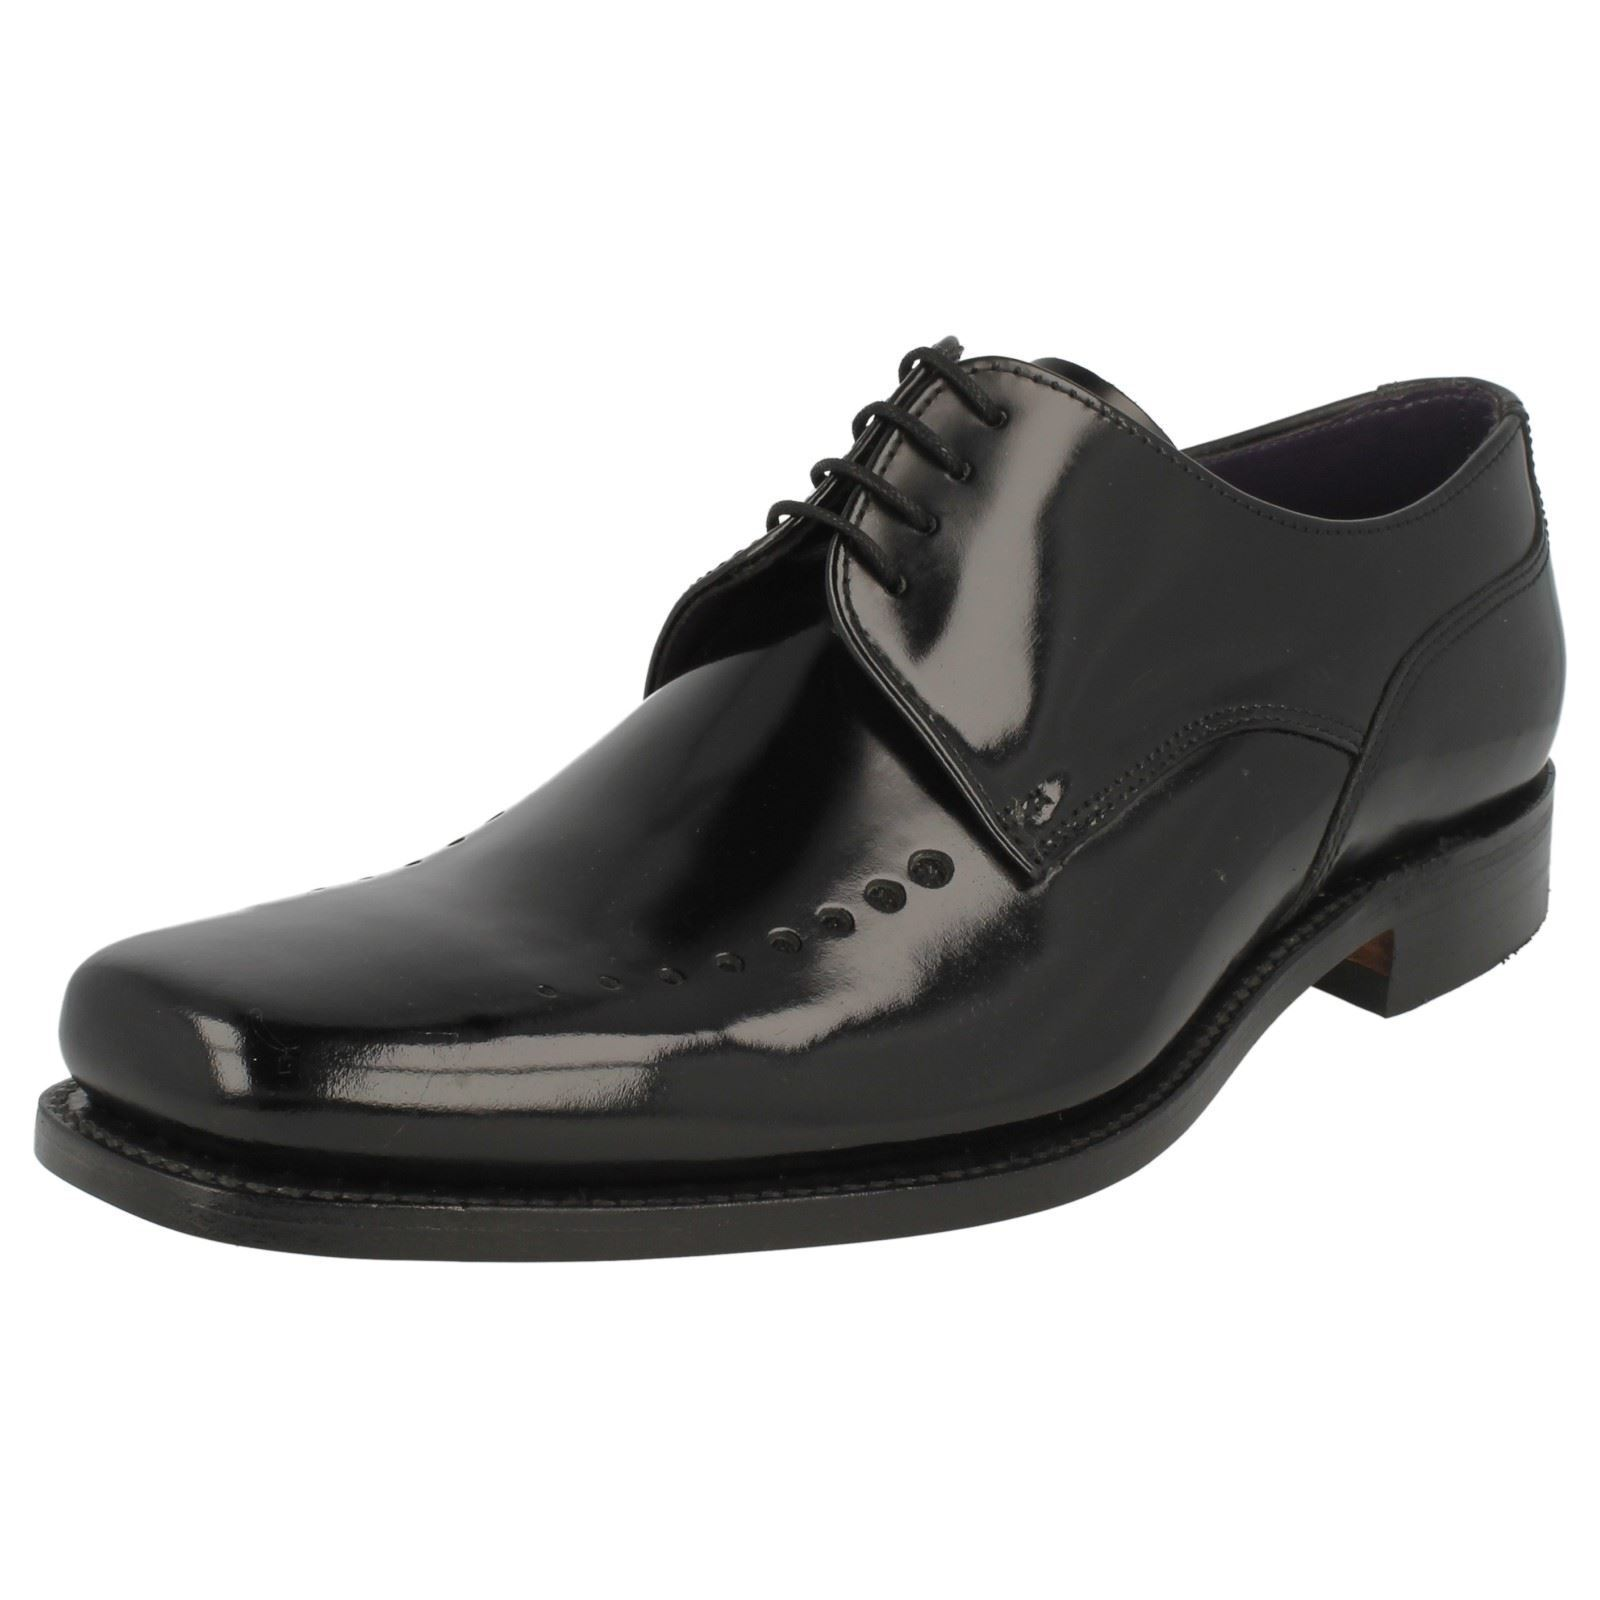 Mens Black Leather Lace Up Loake Formal Shoes Poseidon